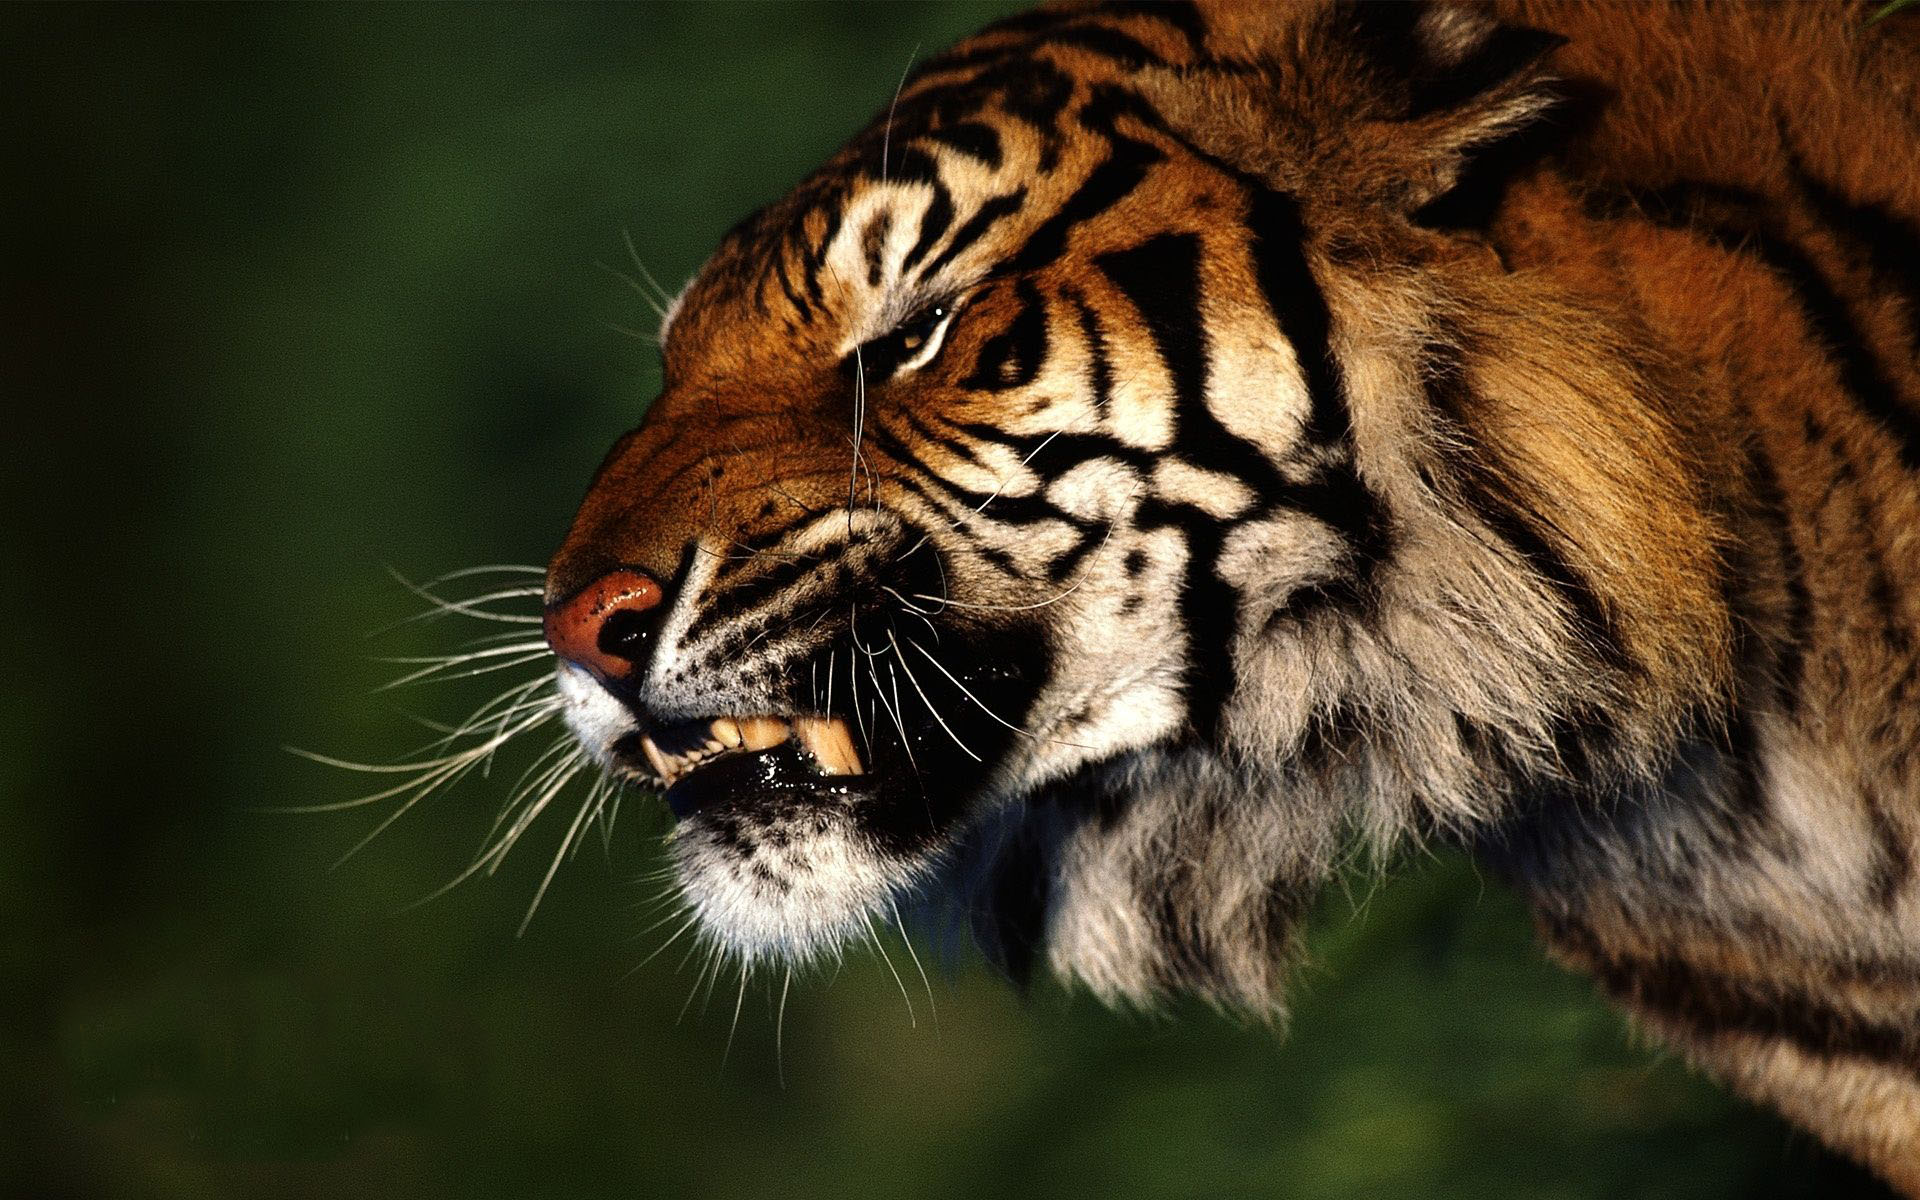 Angry Tiger Wallpaper Angry Tiger wallpapers